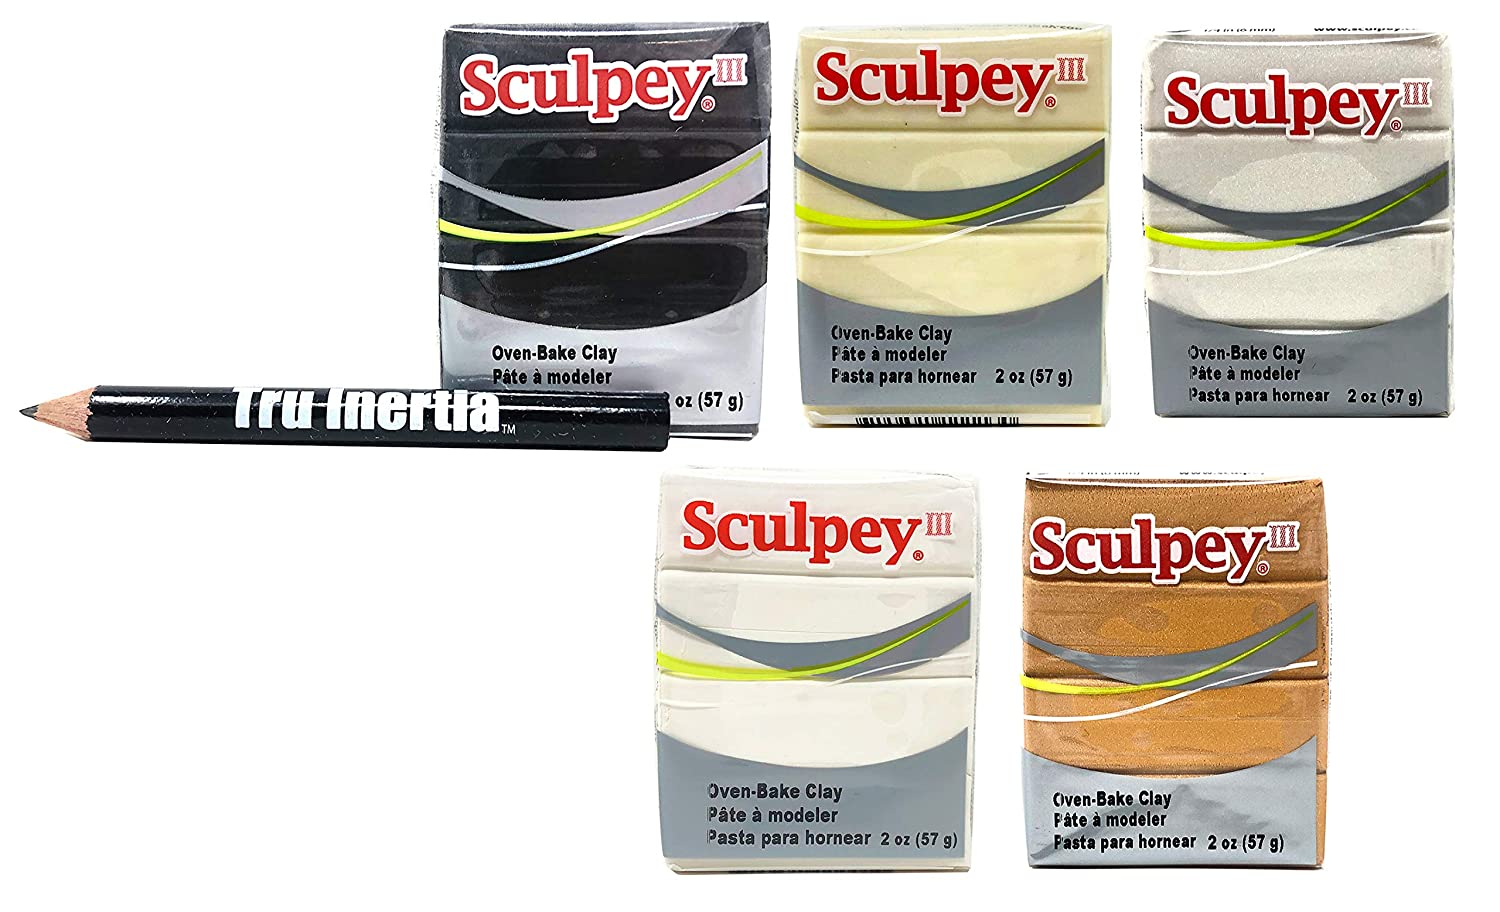 Sculpey III Oven-Bake Clay 2 Ounce Variety Pack of 5 – Glow in The Dark, White, Black, Gold, Pearl Clay Variety with Tru Inertia Pencil